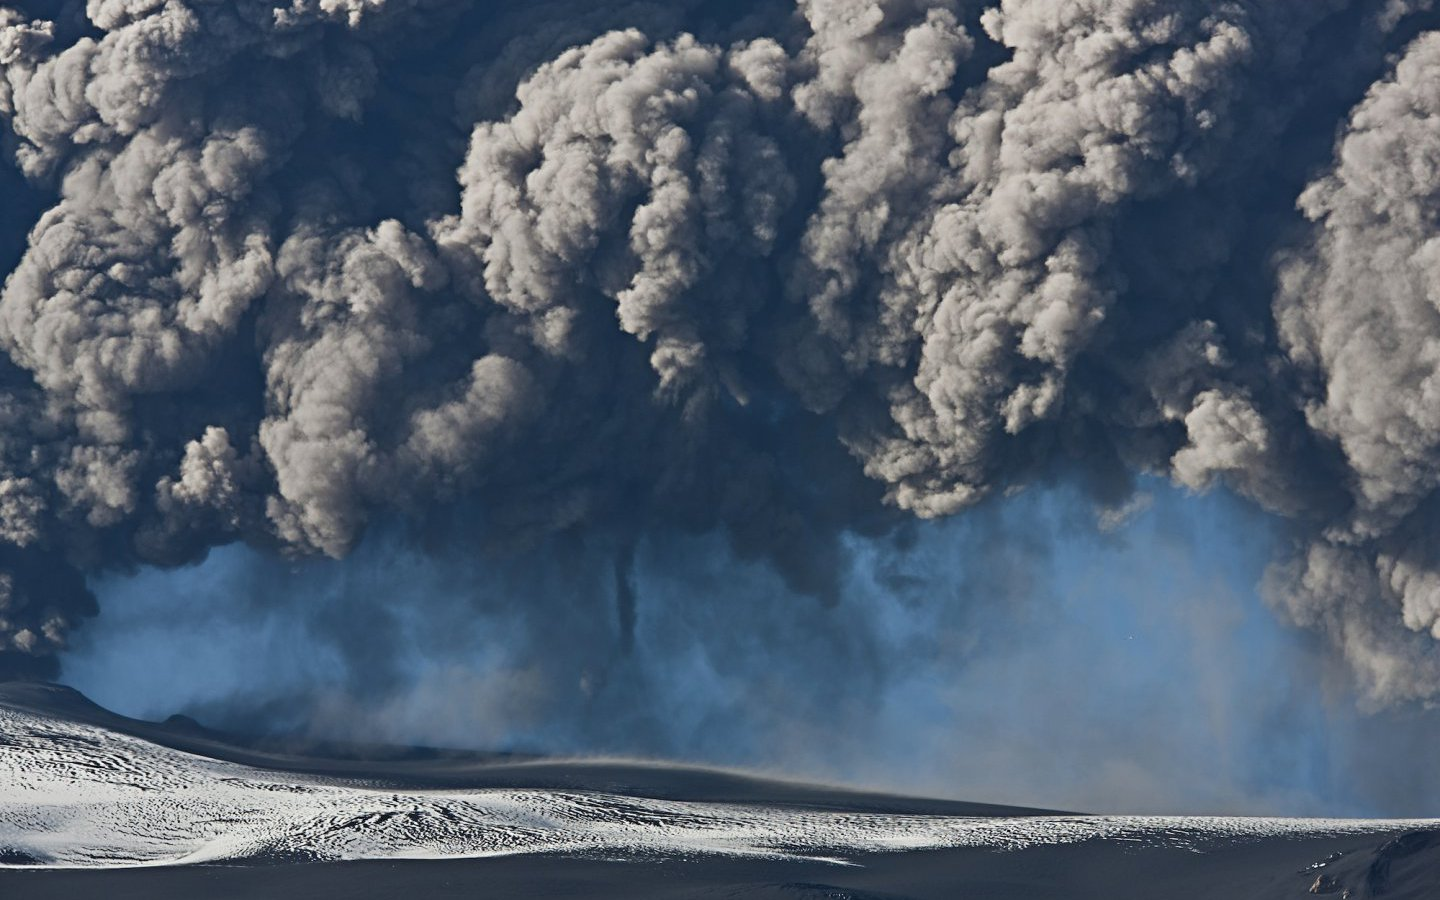 Ash cloud after the eruption of Eyjafjallajökull